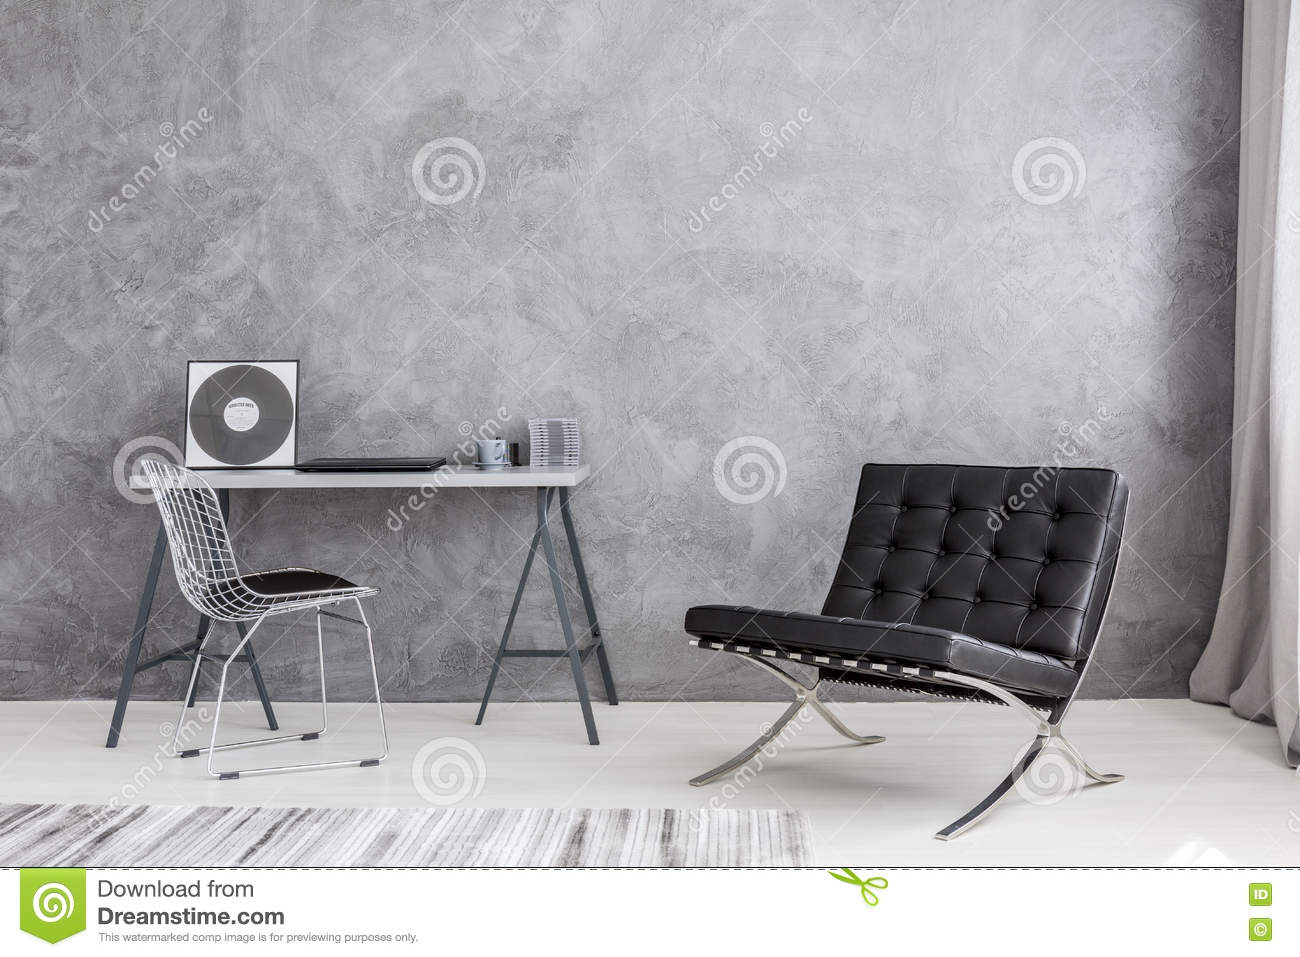 Modern Lounge Chair And Music Collection Stock Photo - Image of ...